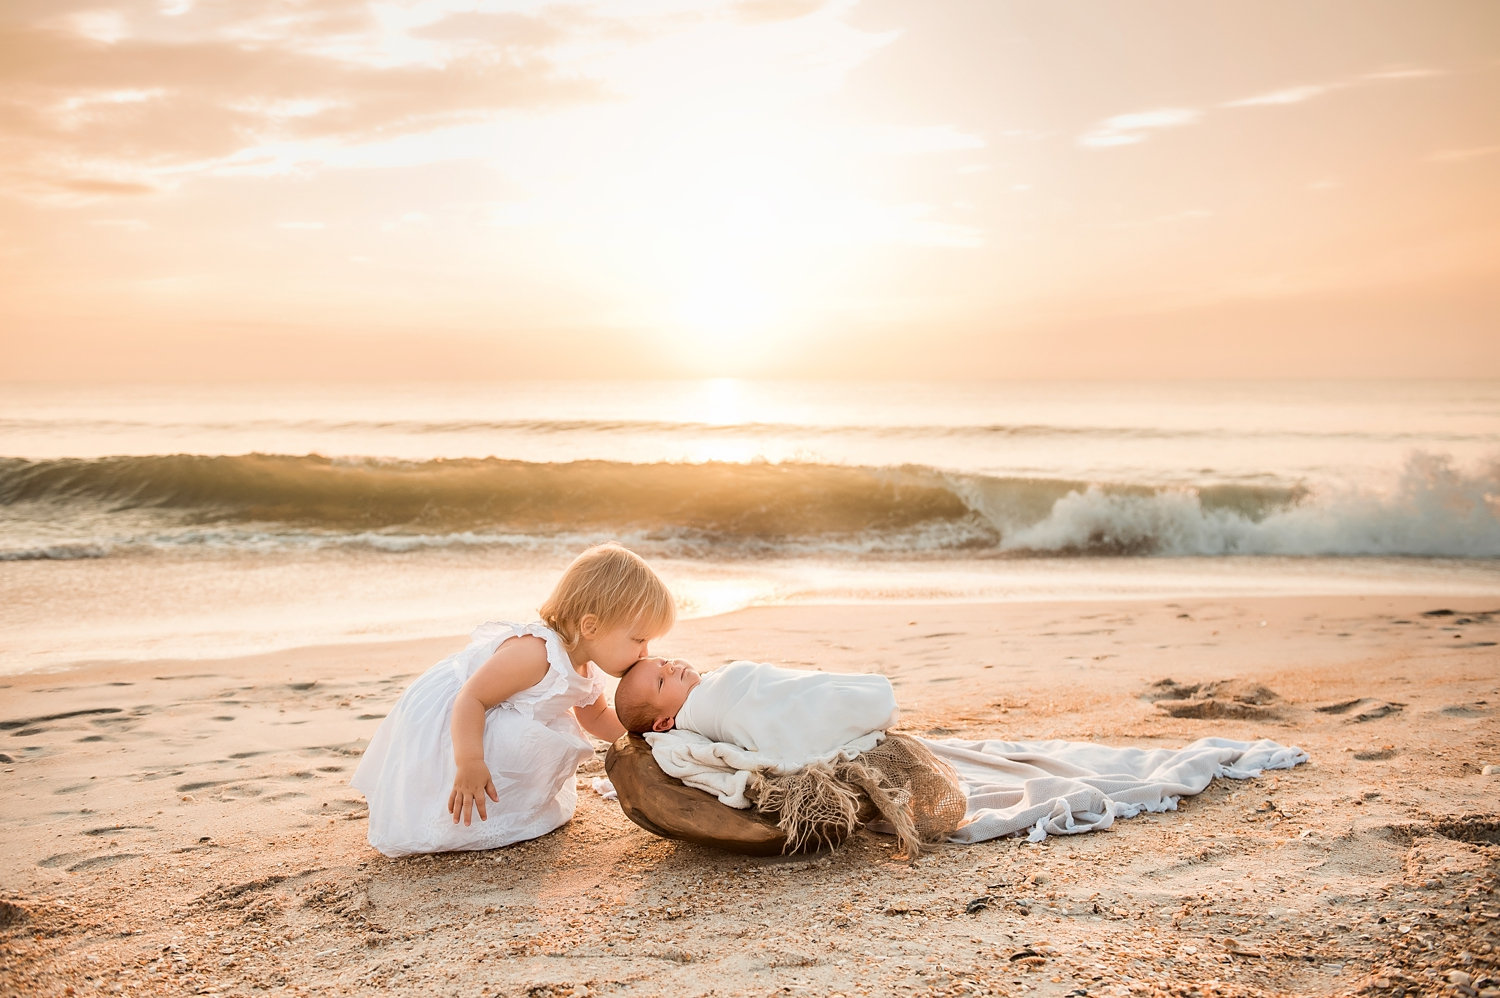 little girl kissing newborn baby sister on her forehead, the waves are rolling in the background, the sun is coming up over the Atlantic ocean